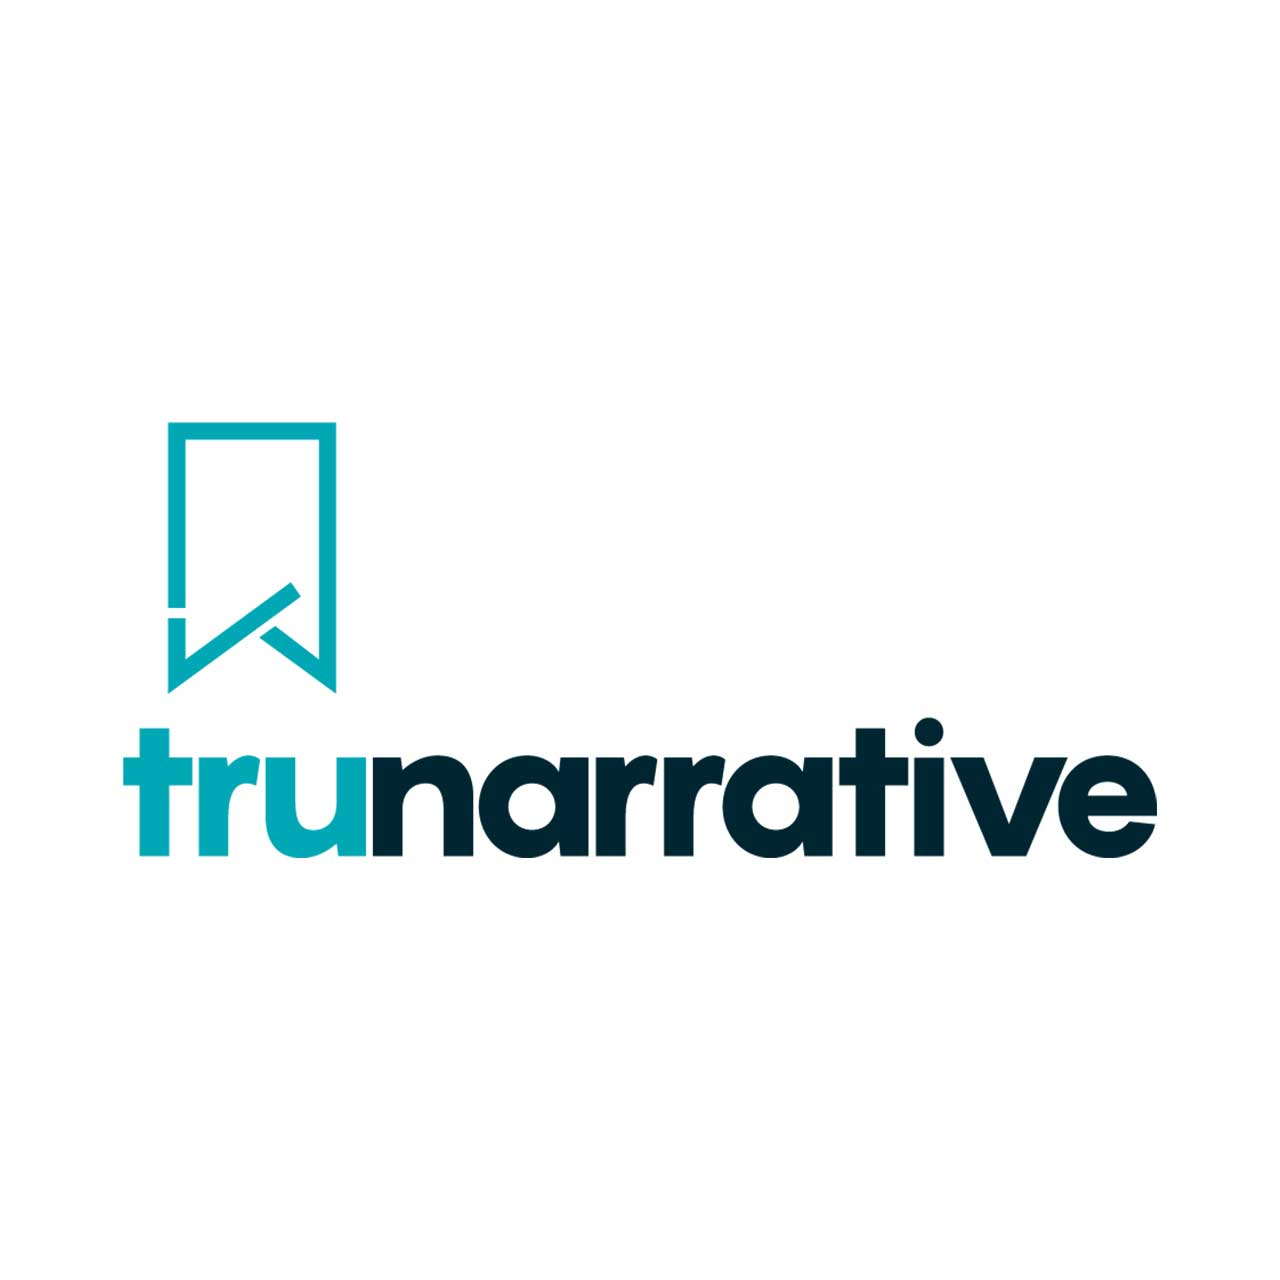 tru-narrative-logo-square